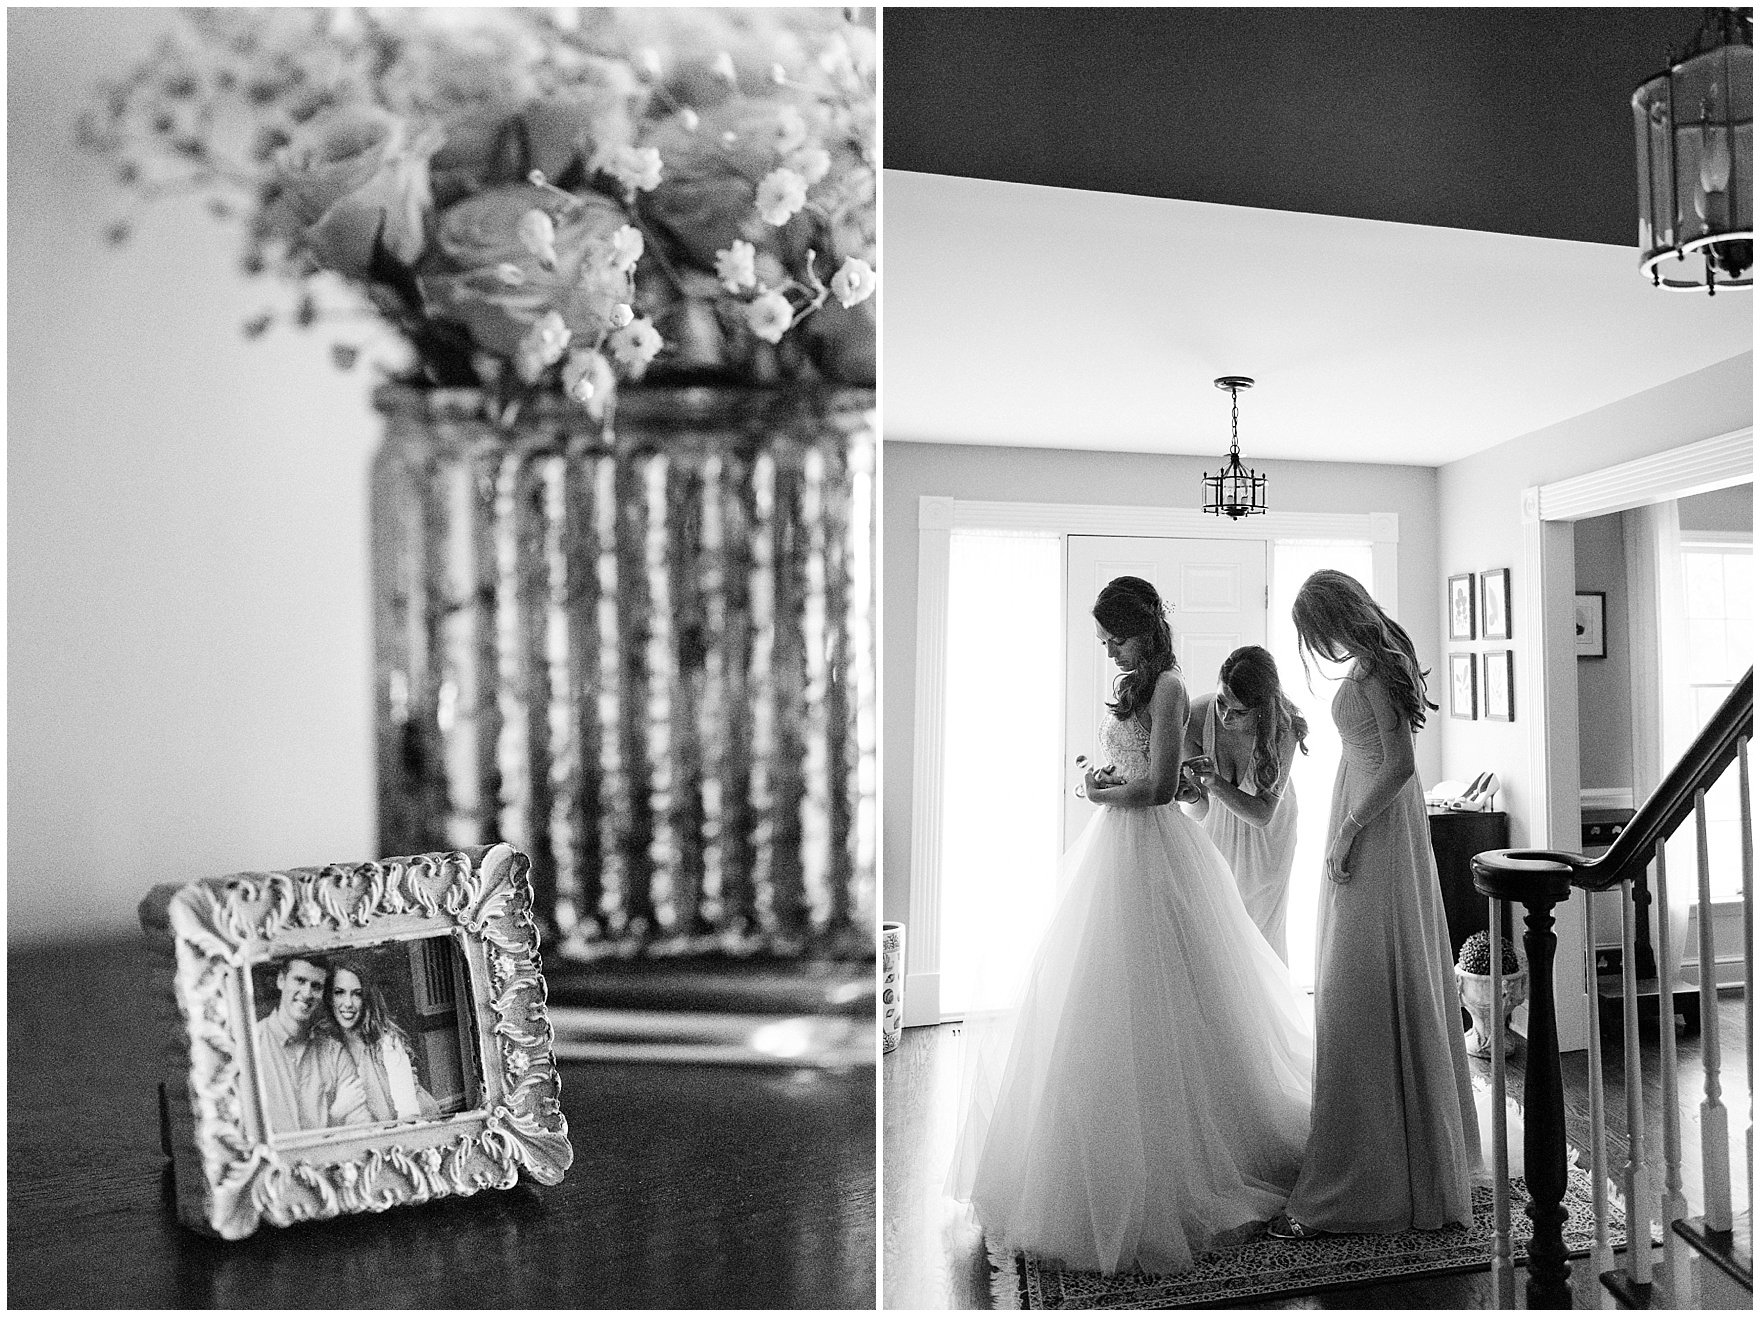 The bride gets ready at home before a Biltmore Country Club Barrington wedding.